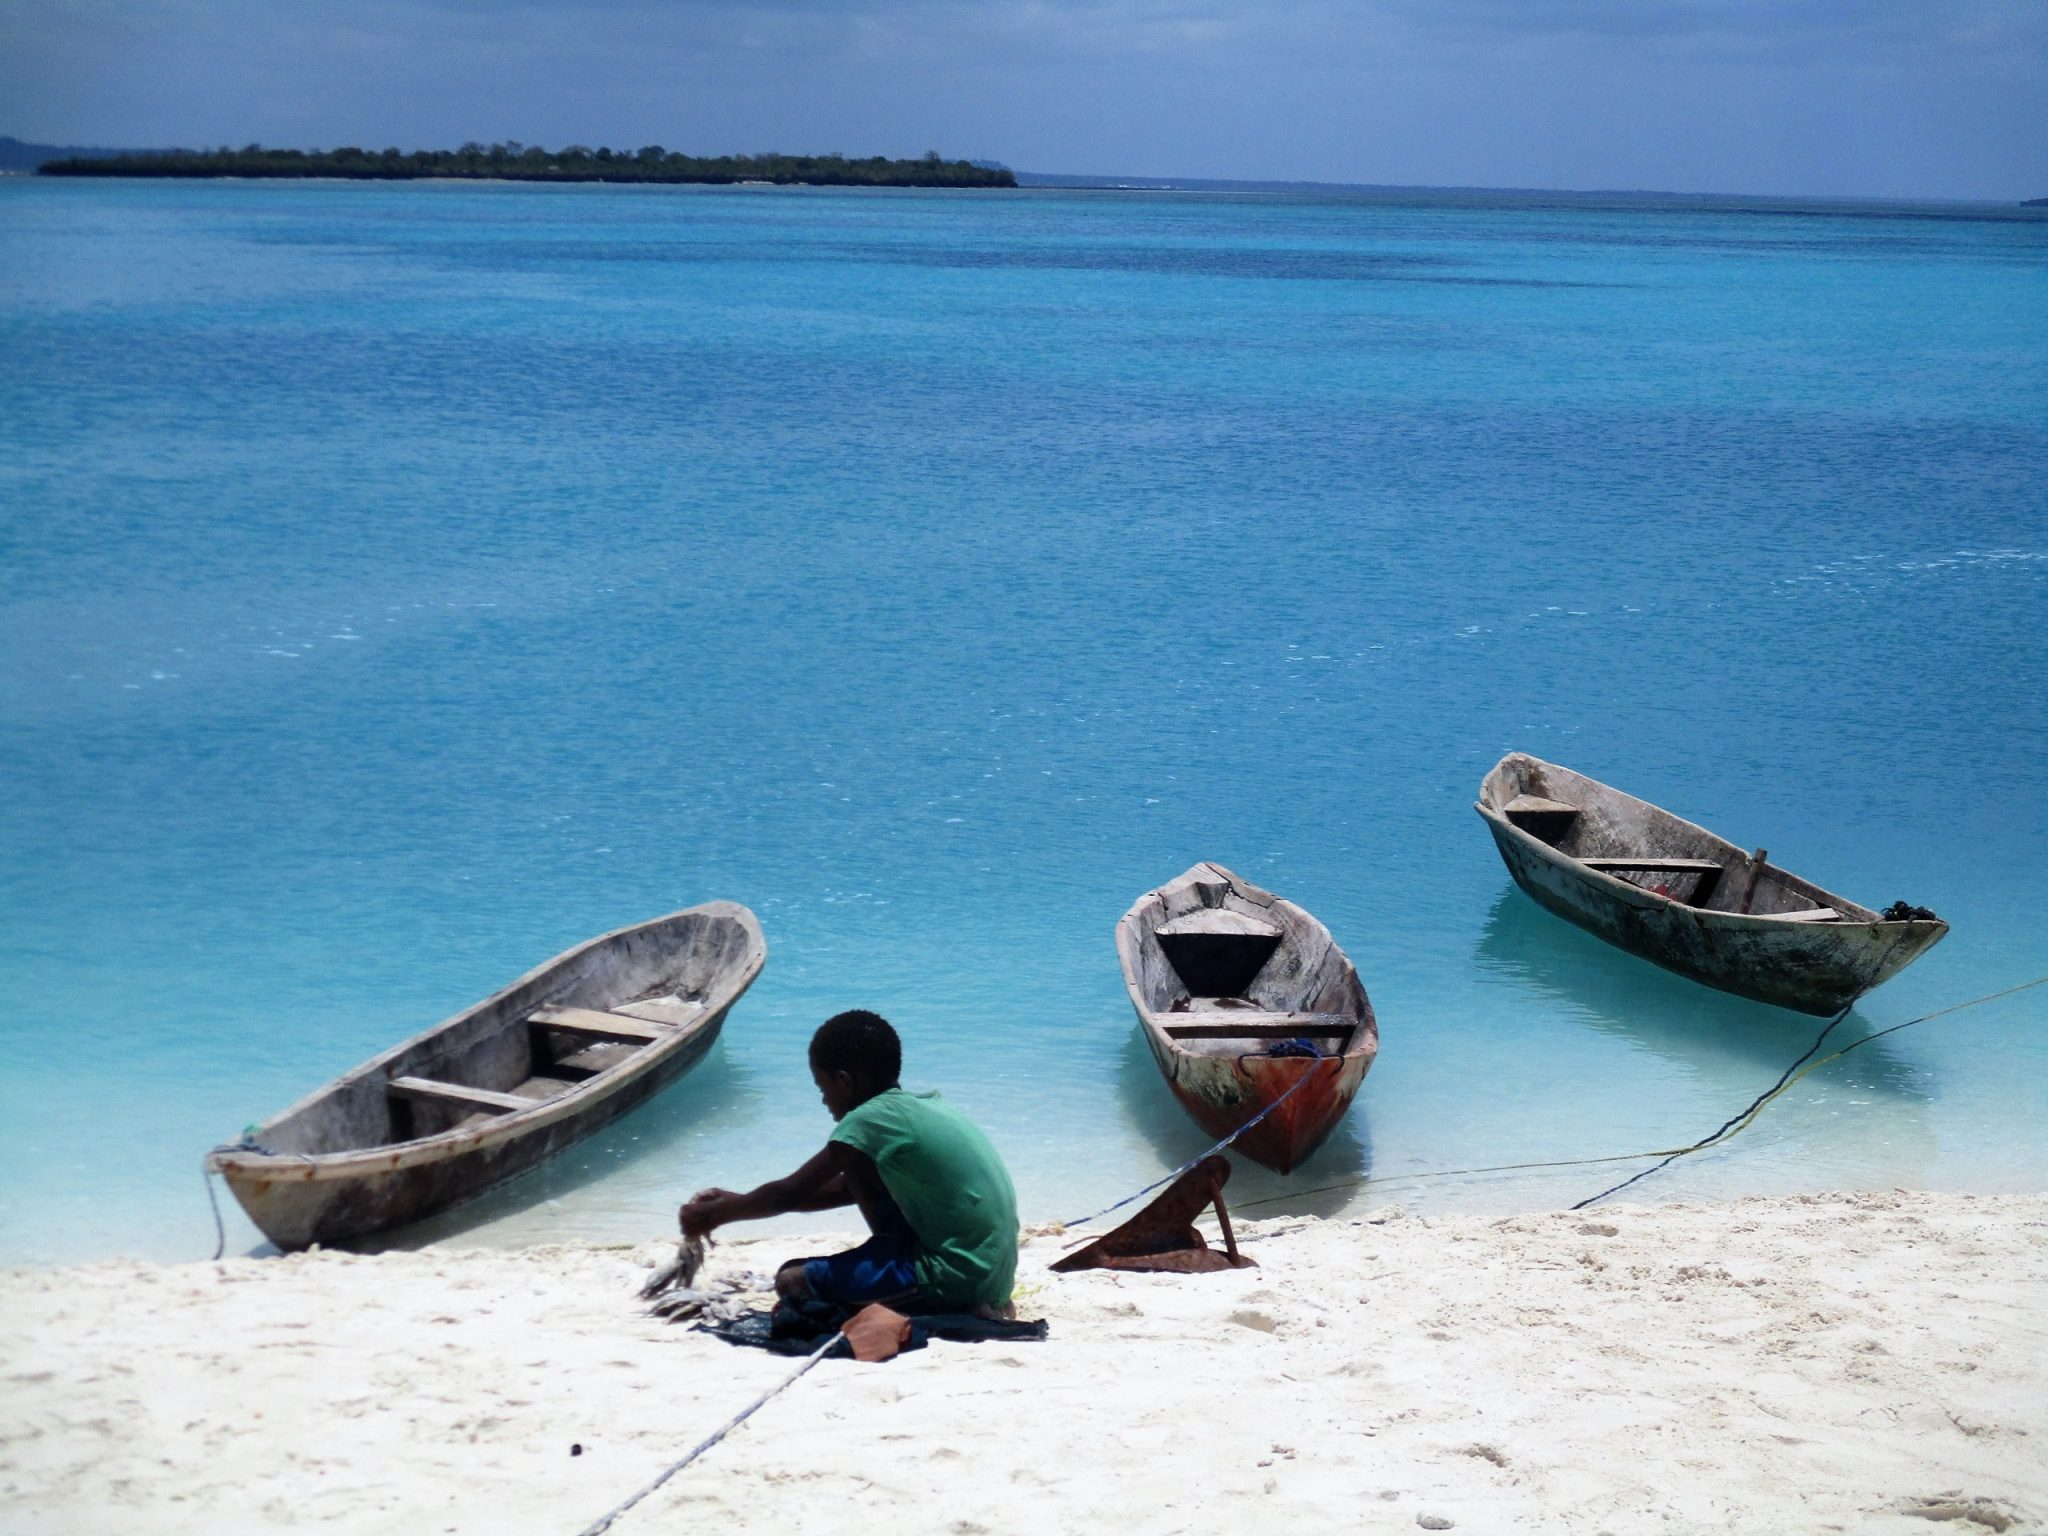 A photo of the beach with boats.